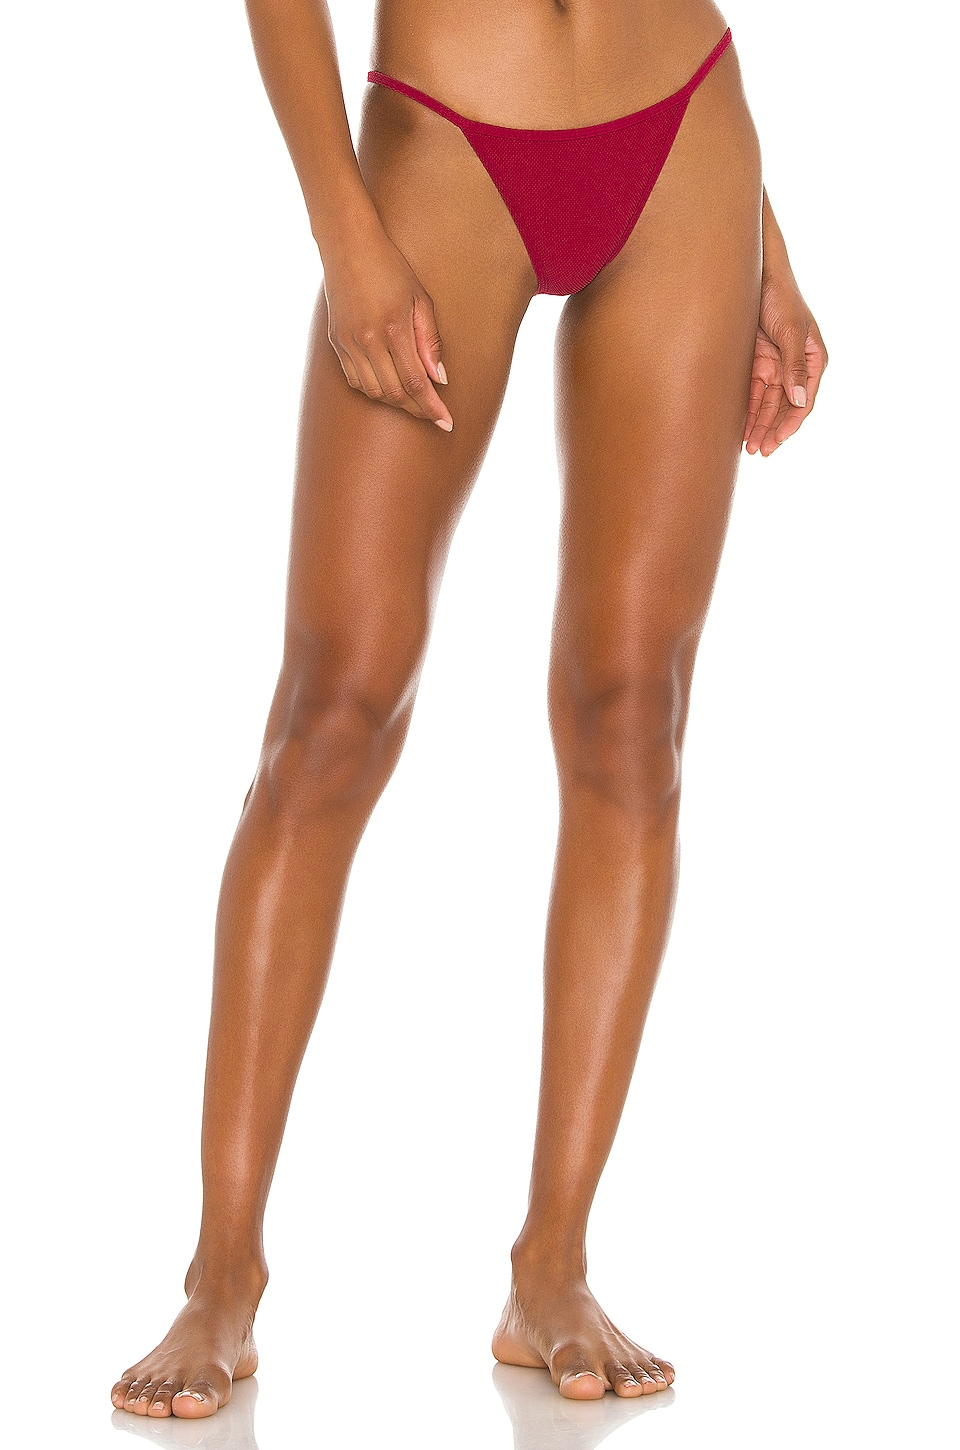 House of Harlow 1960 X REVOLVE Valcun Bottom in Berry